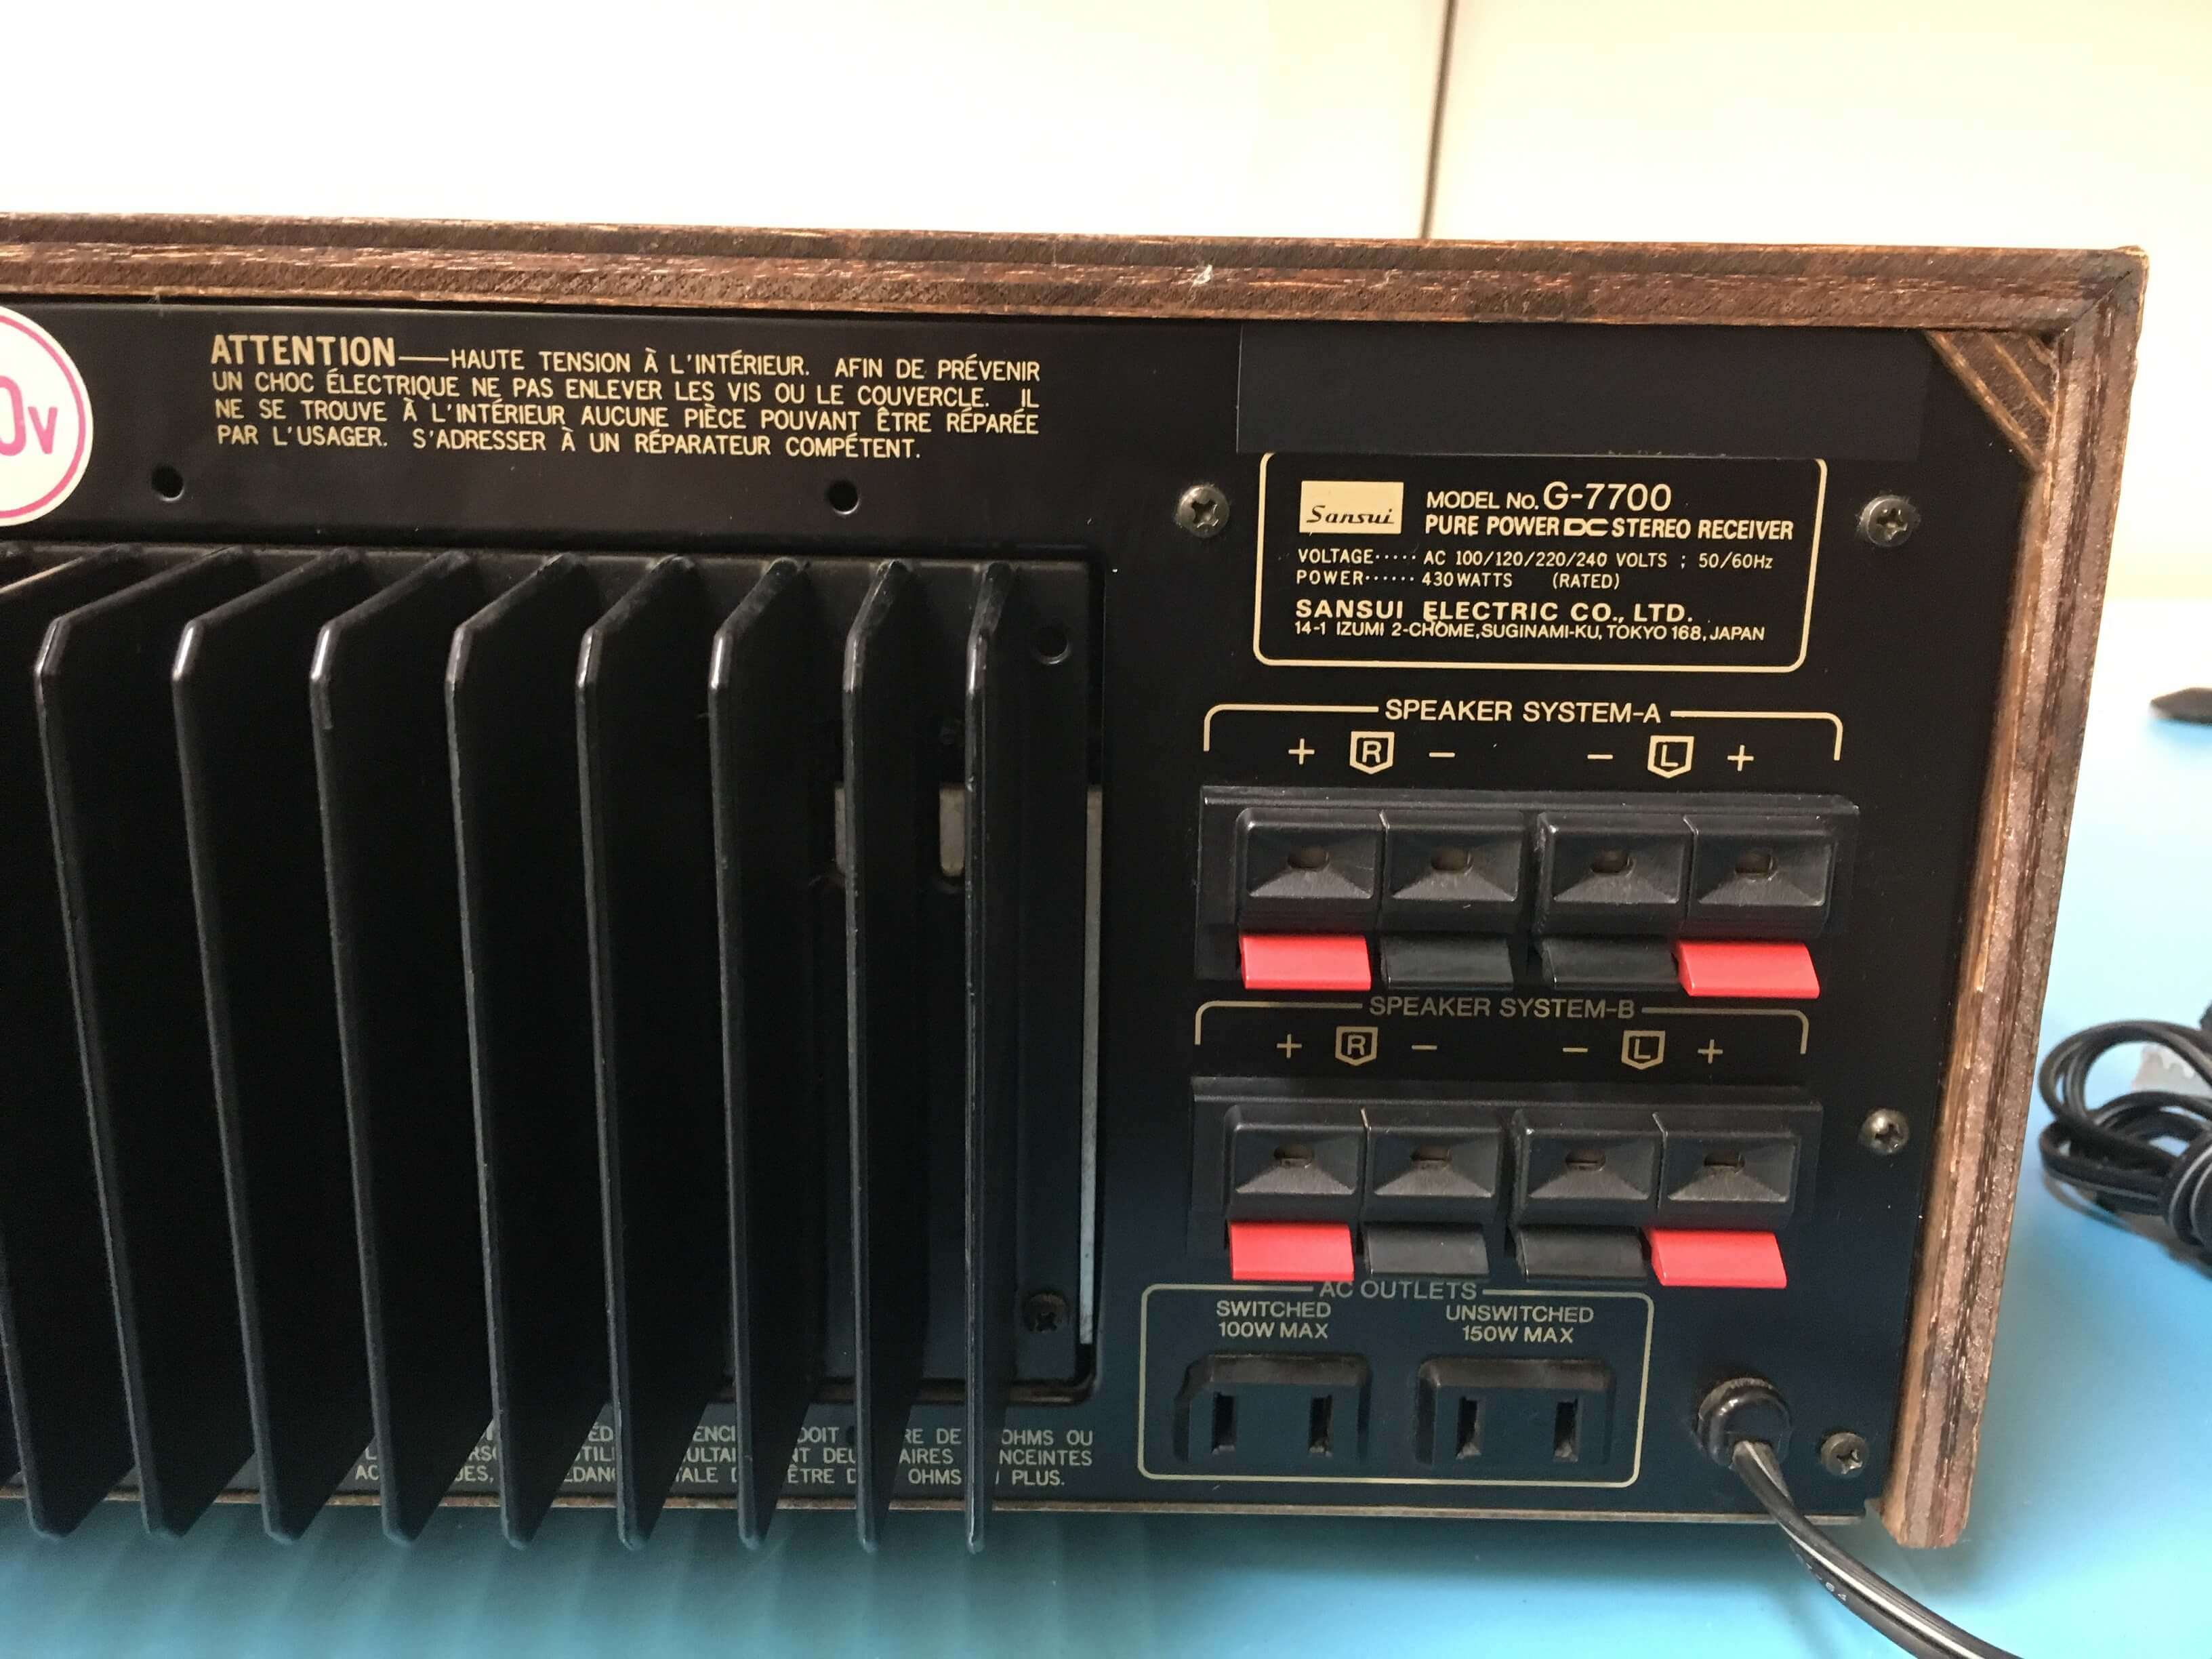 Sansui G-7700 stereo receiver